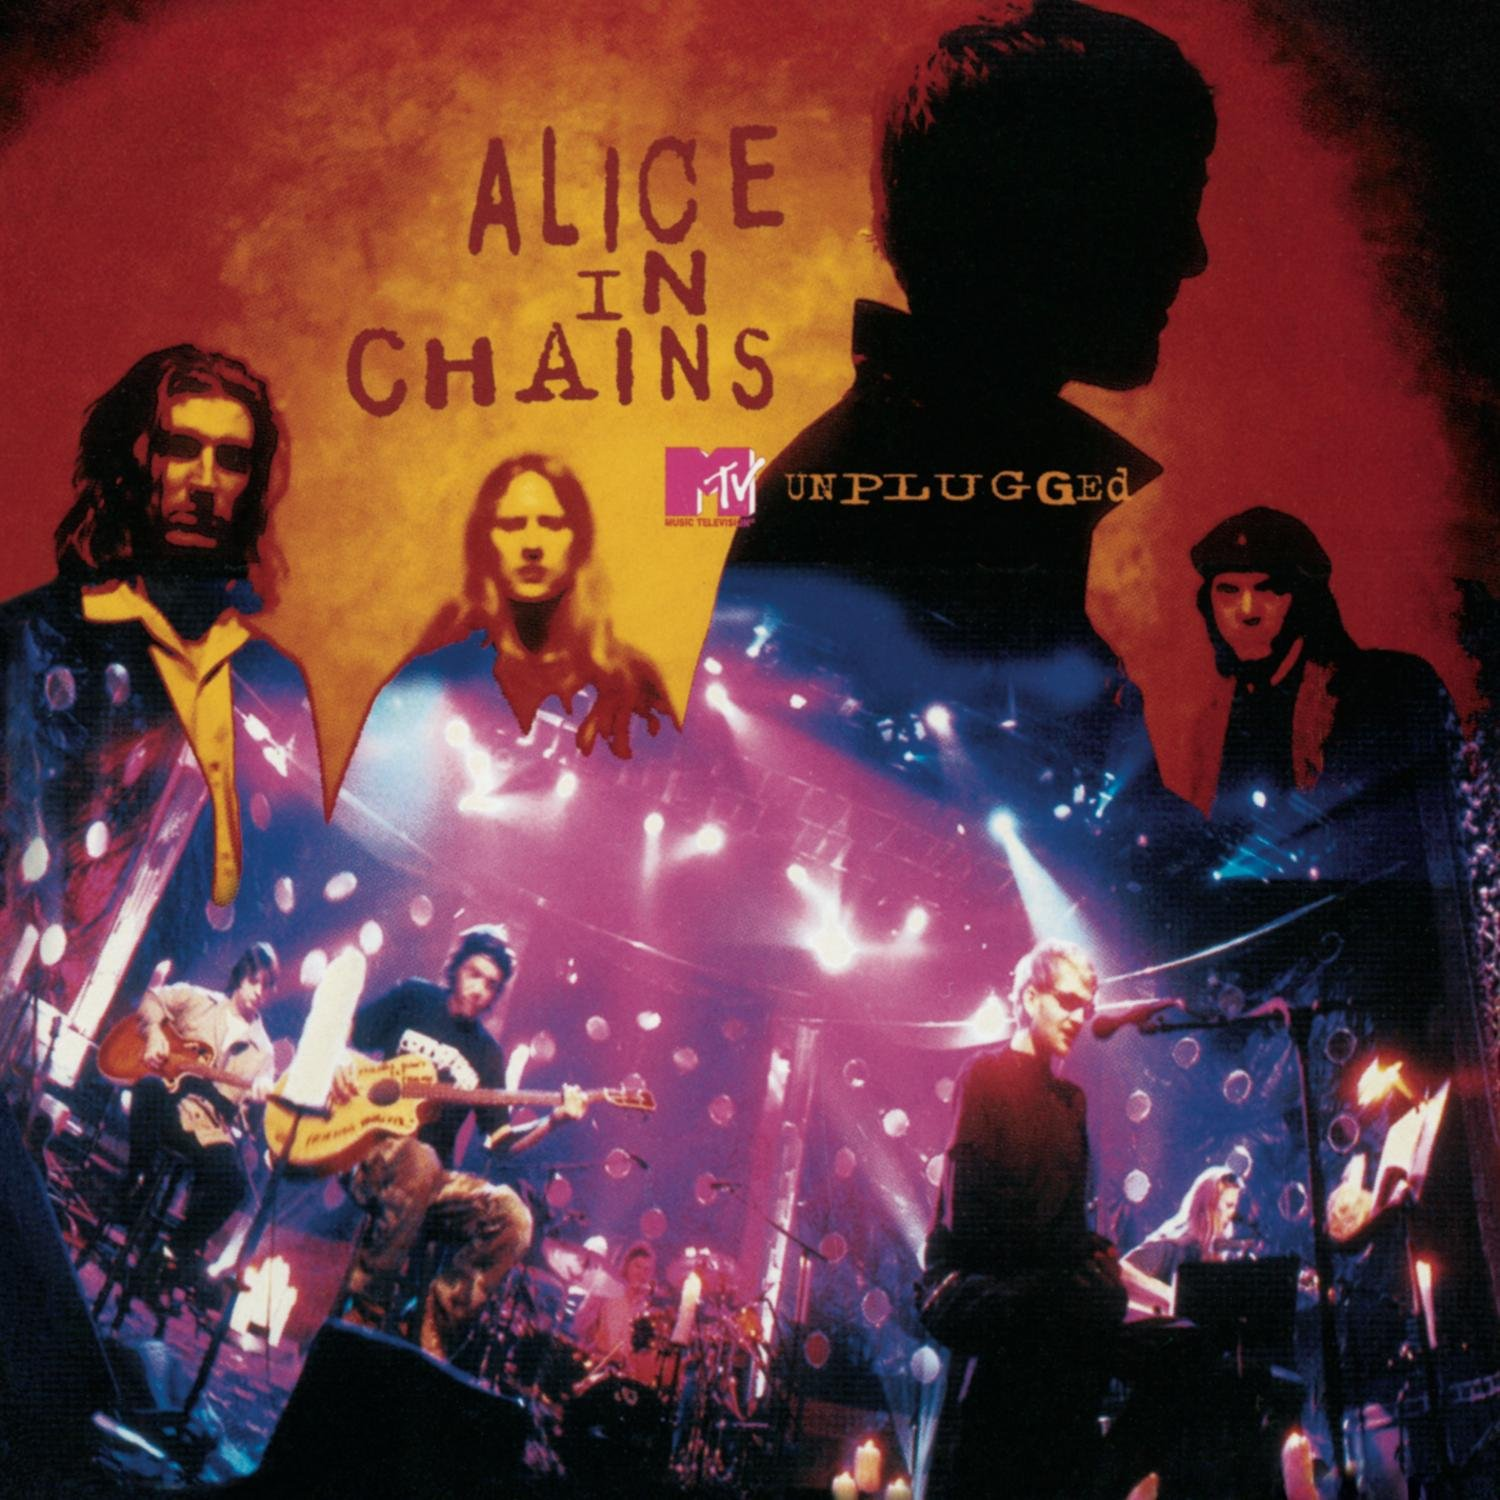 Alice in chains unplugged mp3 скачать торрент